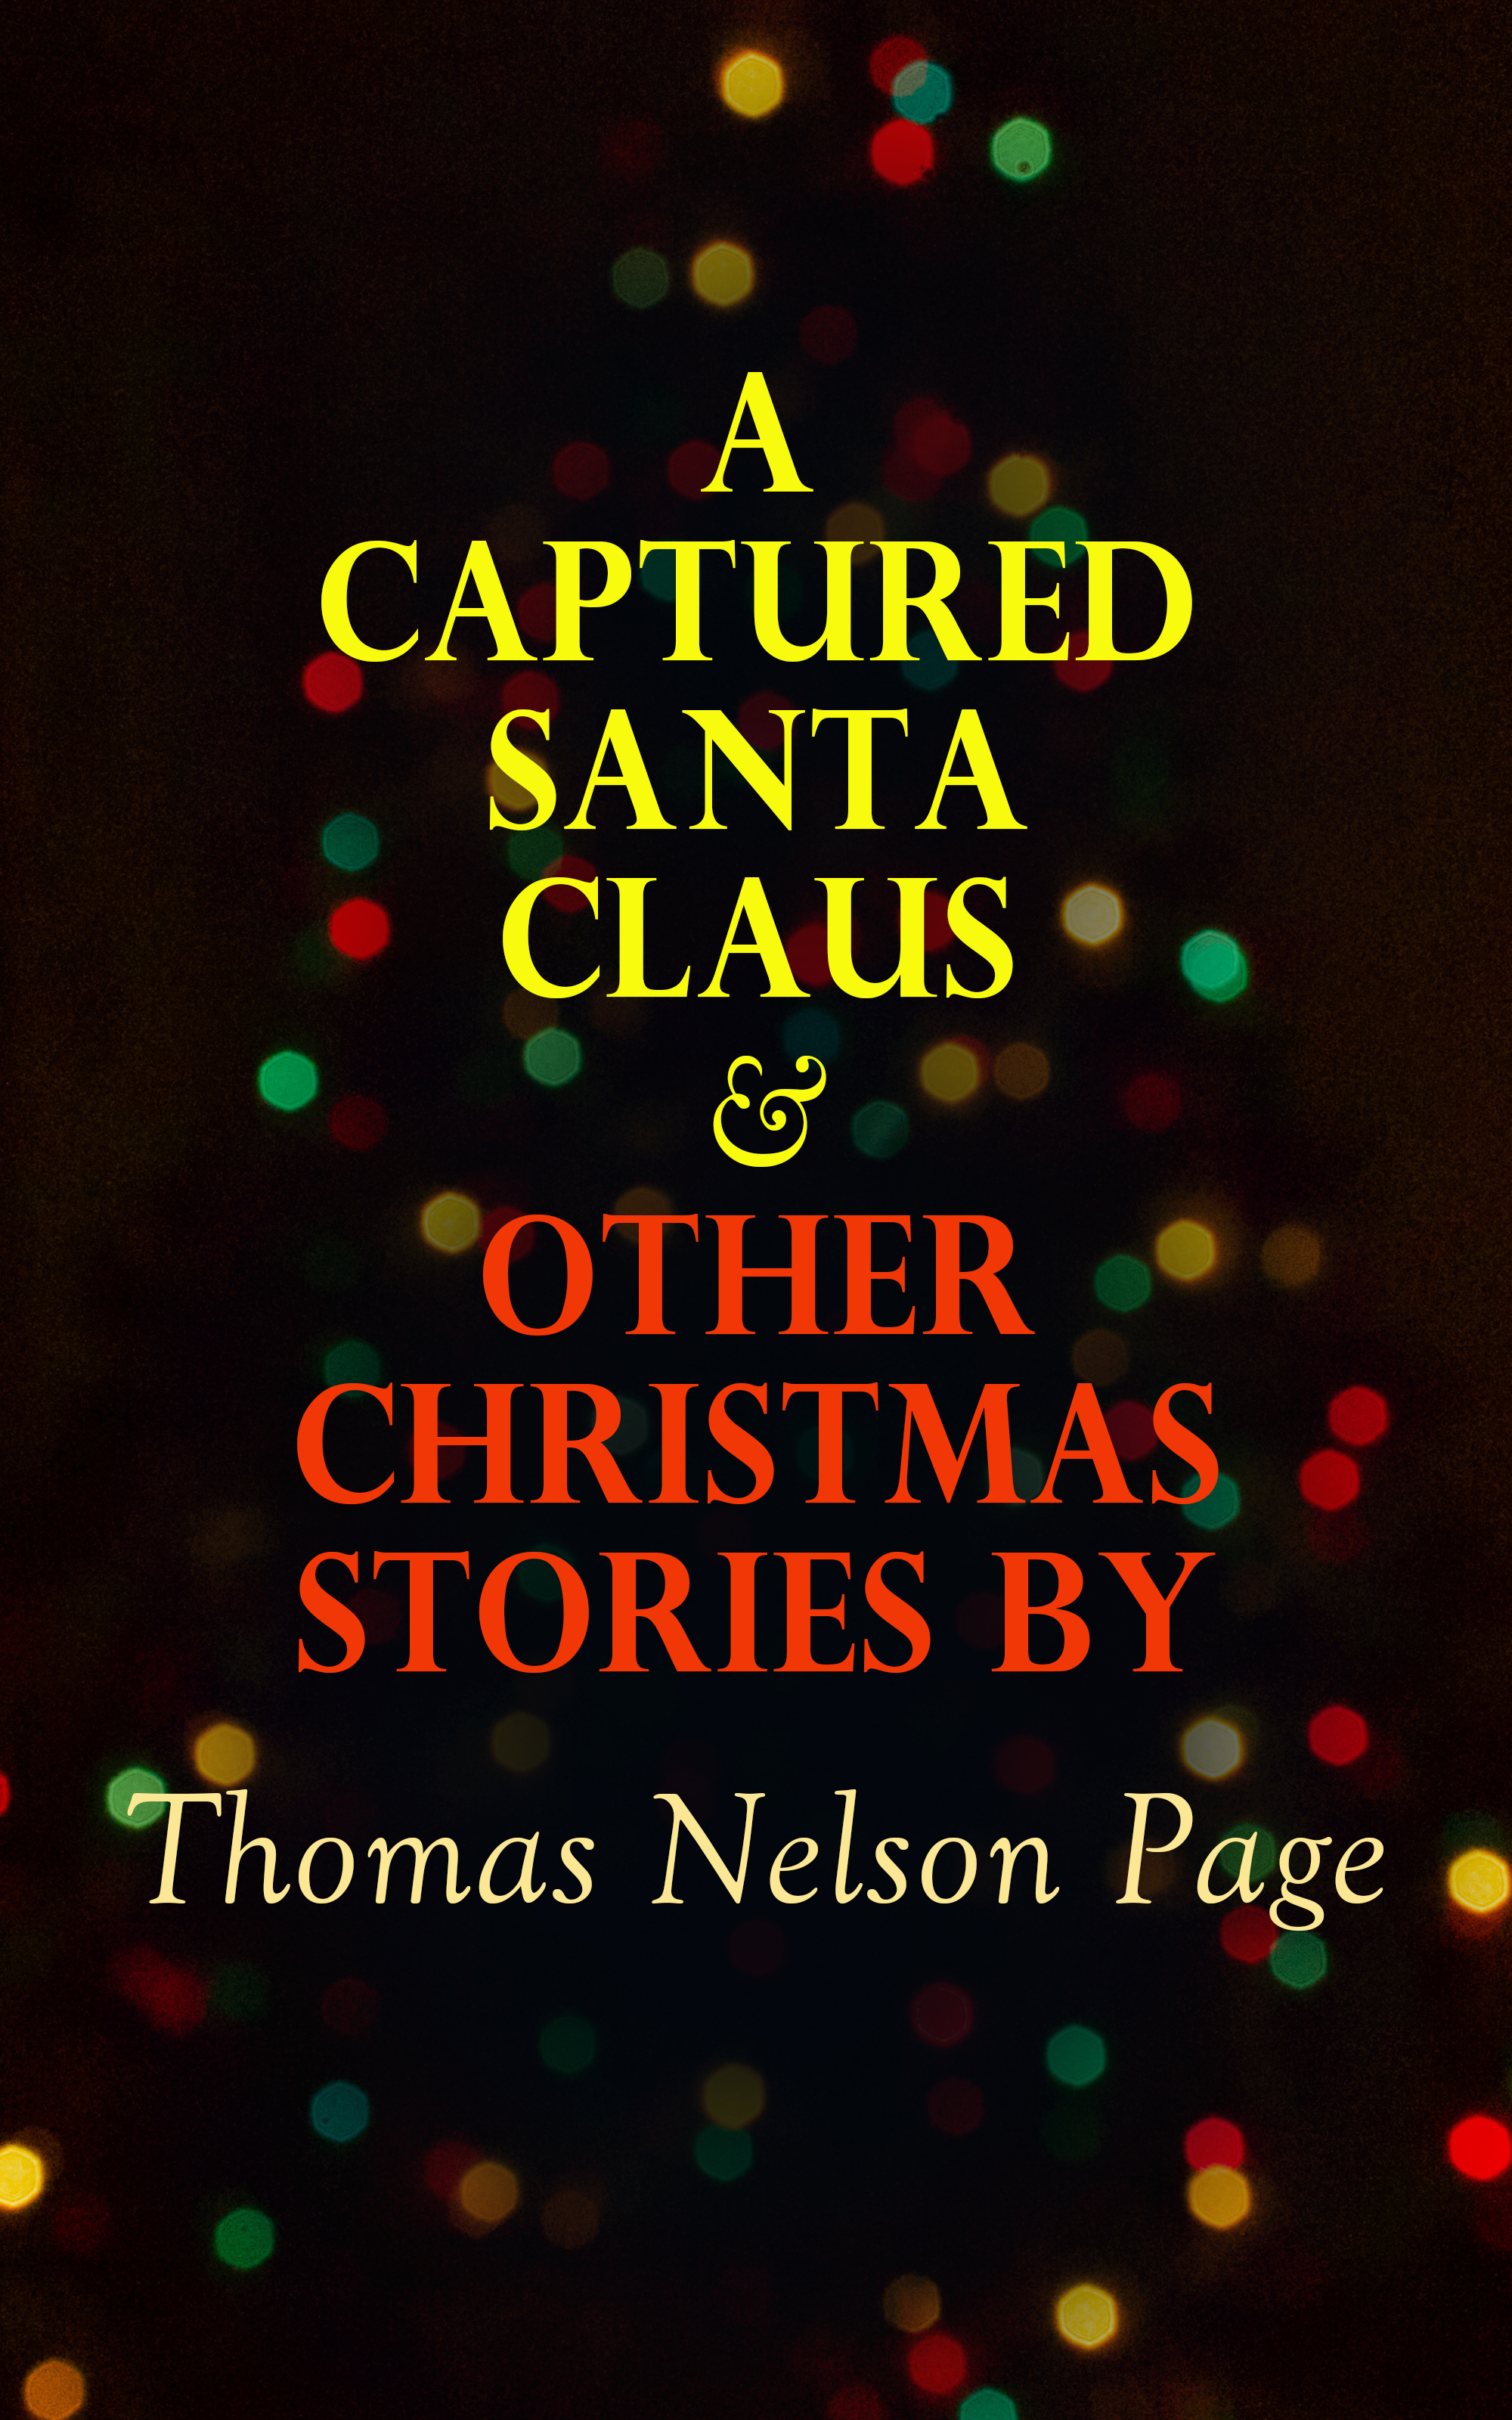 Thomas Nelson Page A Captured Santa Claus & Other Christmas Stories by Thomas Nelson Page august bocky die staatshaushaltung der athener bd 1 page 3 page 4 page 3